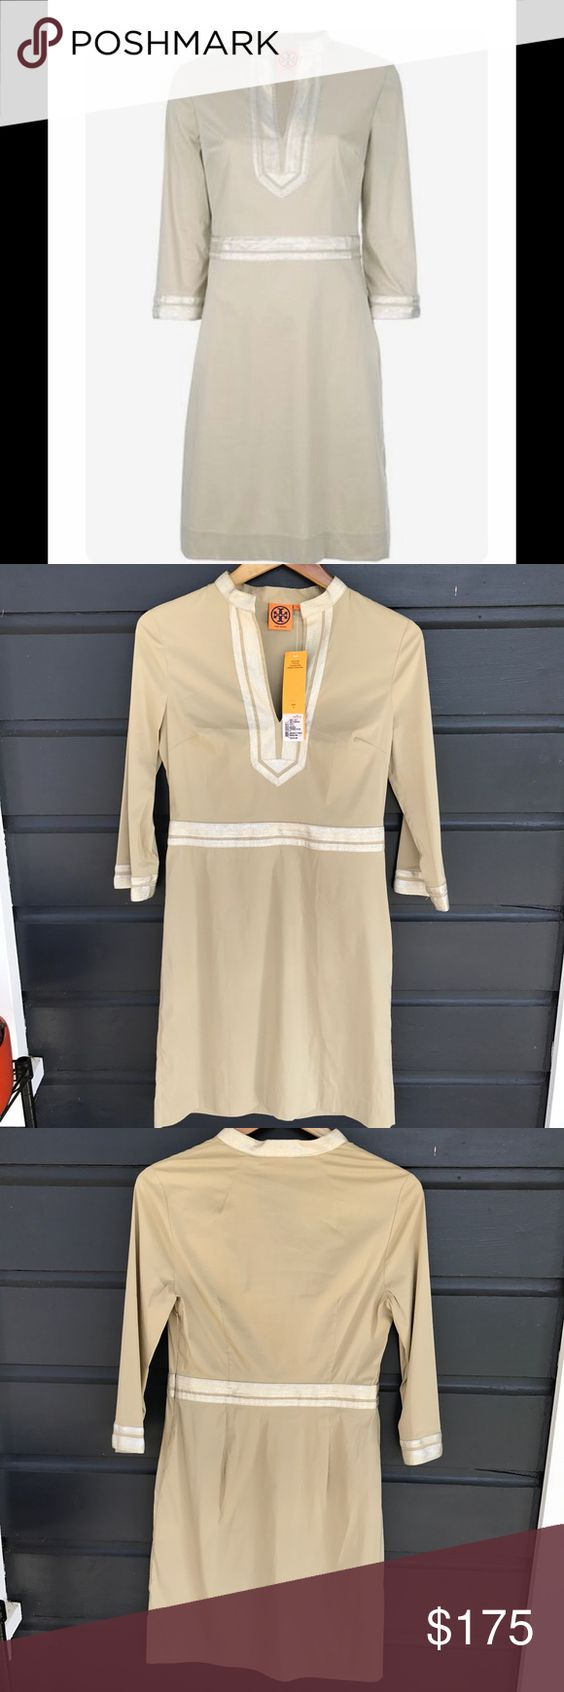 Tory Burch Toteme Round Neck Jumper Tory Burch at her finest! Super elegant khaki dress with a silver trim that lays right above the knee. Three quarter sleeves adds to the modern feel of this dress. The material comprises of cotton and spandex which makes it light and stretchy. *Pristine condition. Tory Burch Dresses